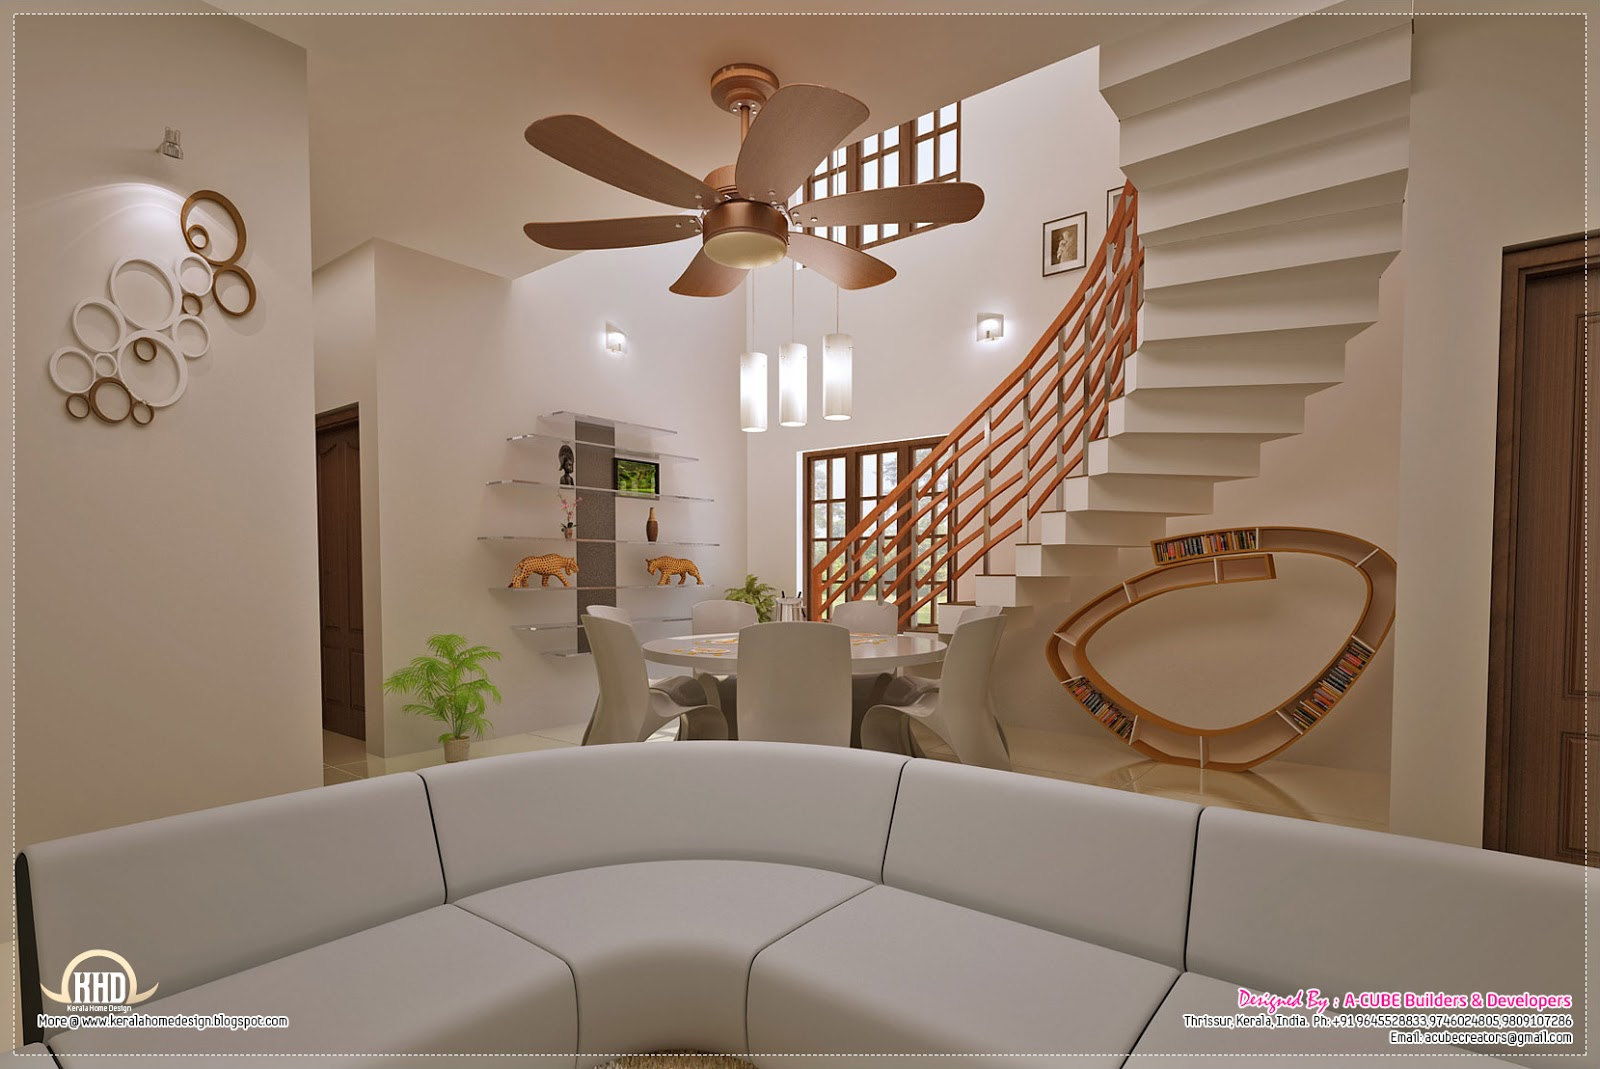 Awesome interior decoration ideas kerala home design and floor plans - Designs for homes interior ...